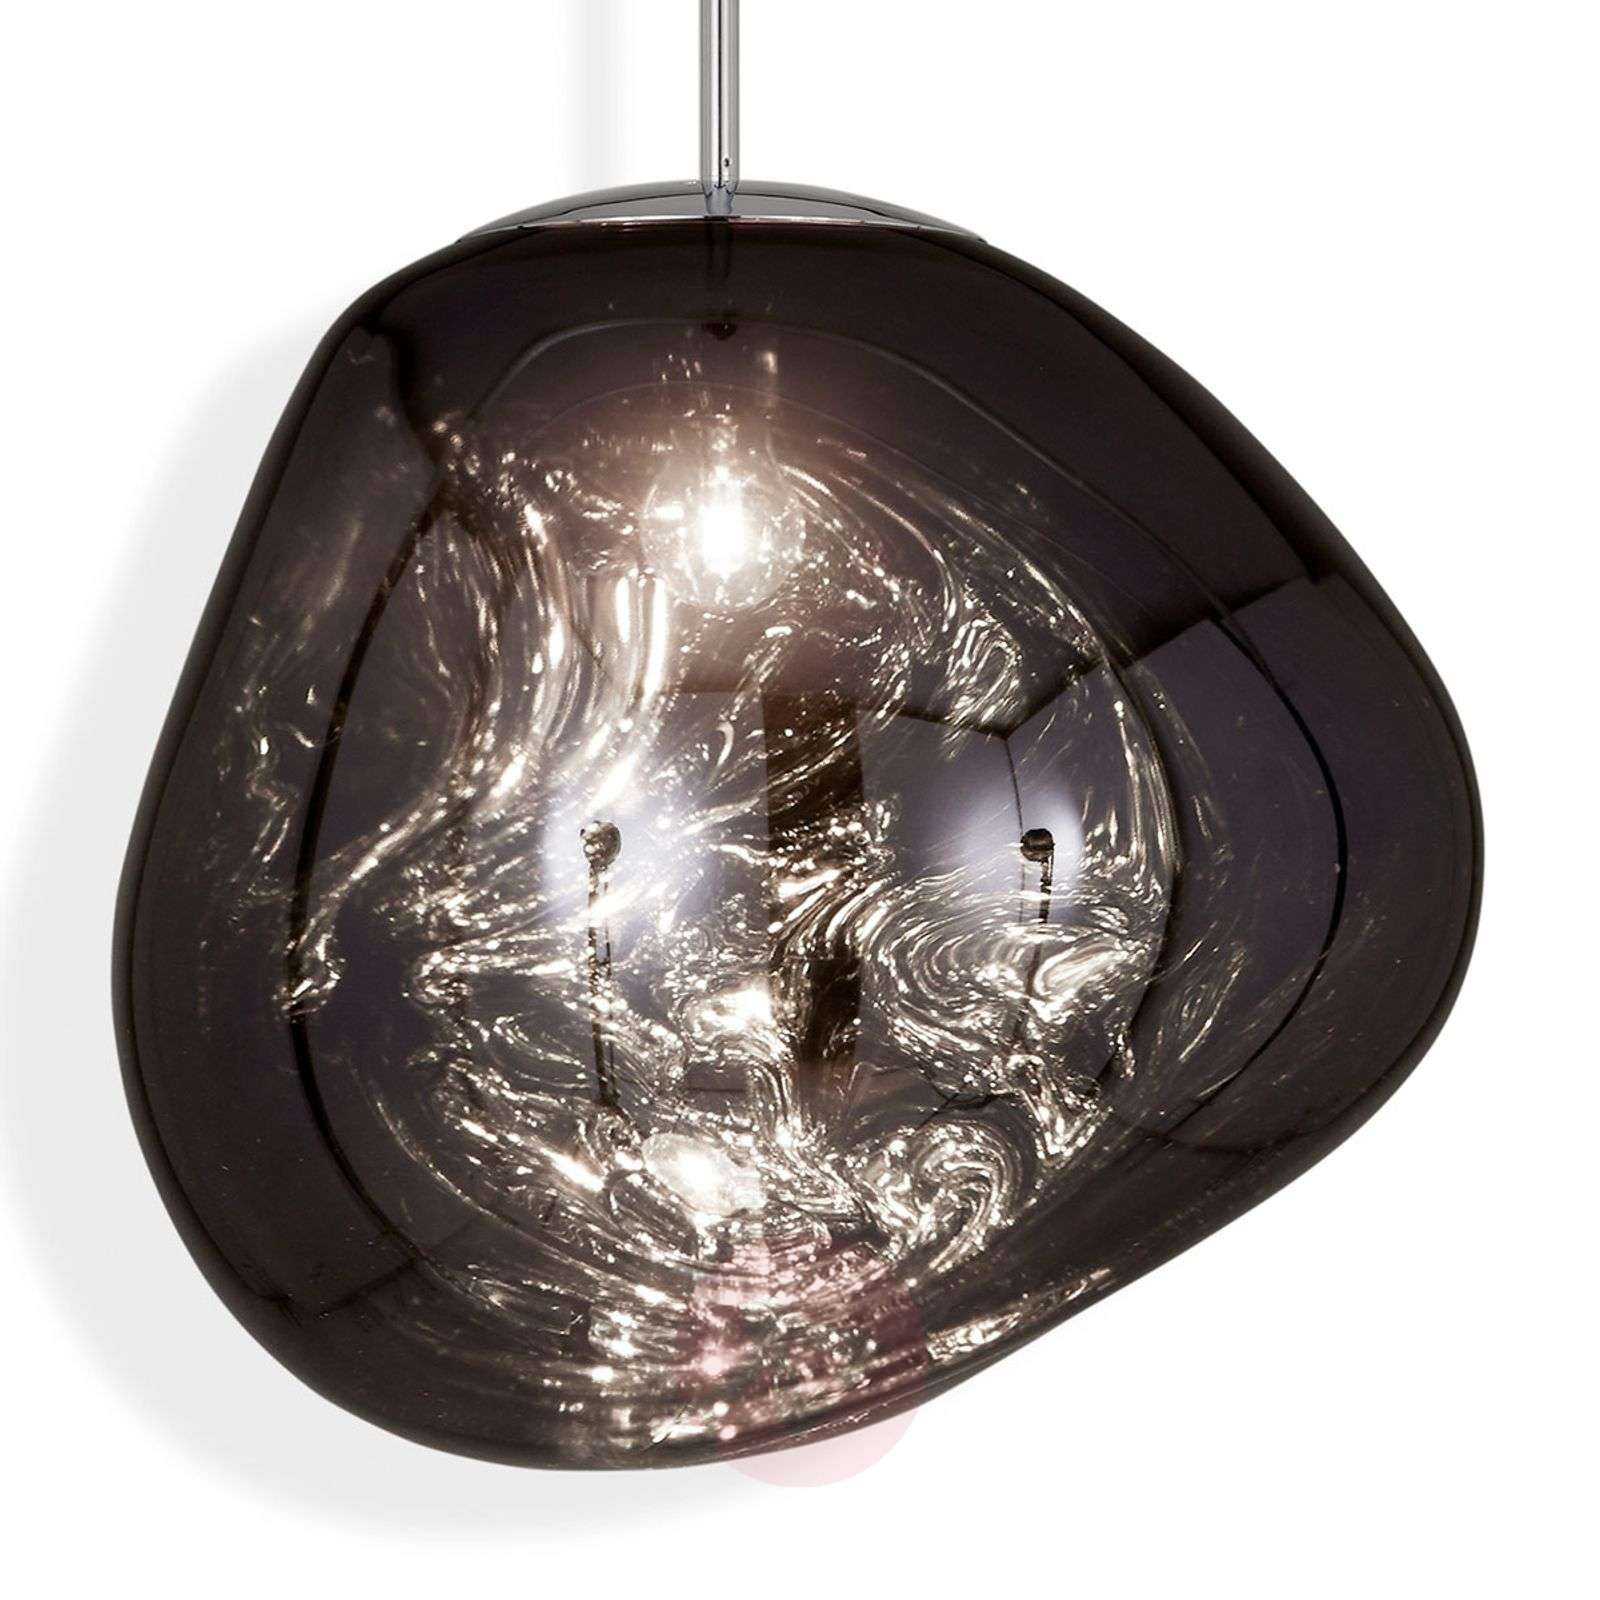 Tom Dixon Melt hanglamp-9043032X-01